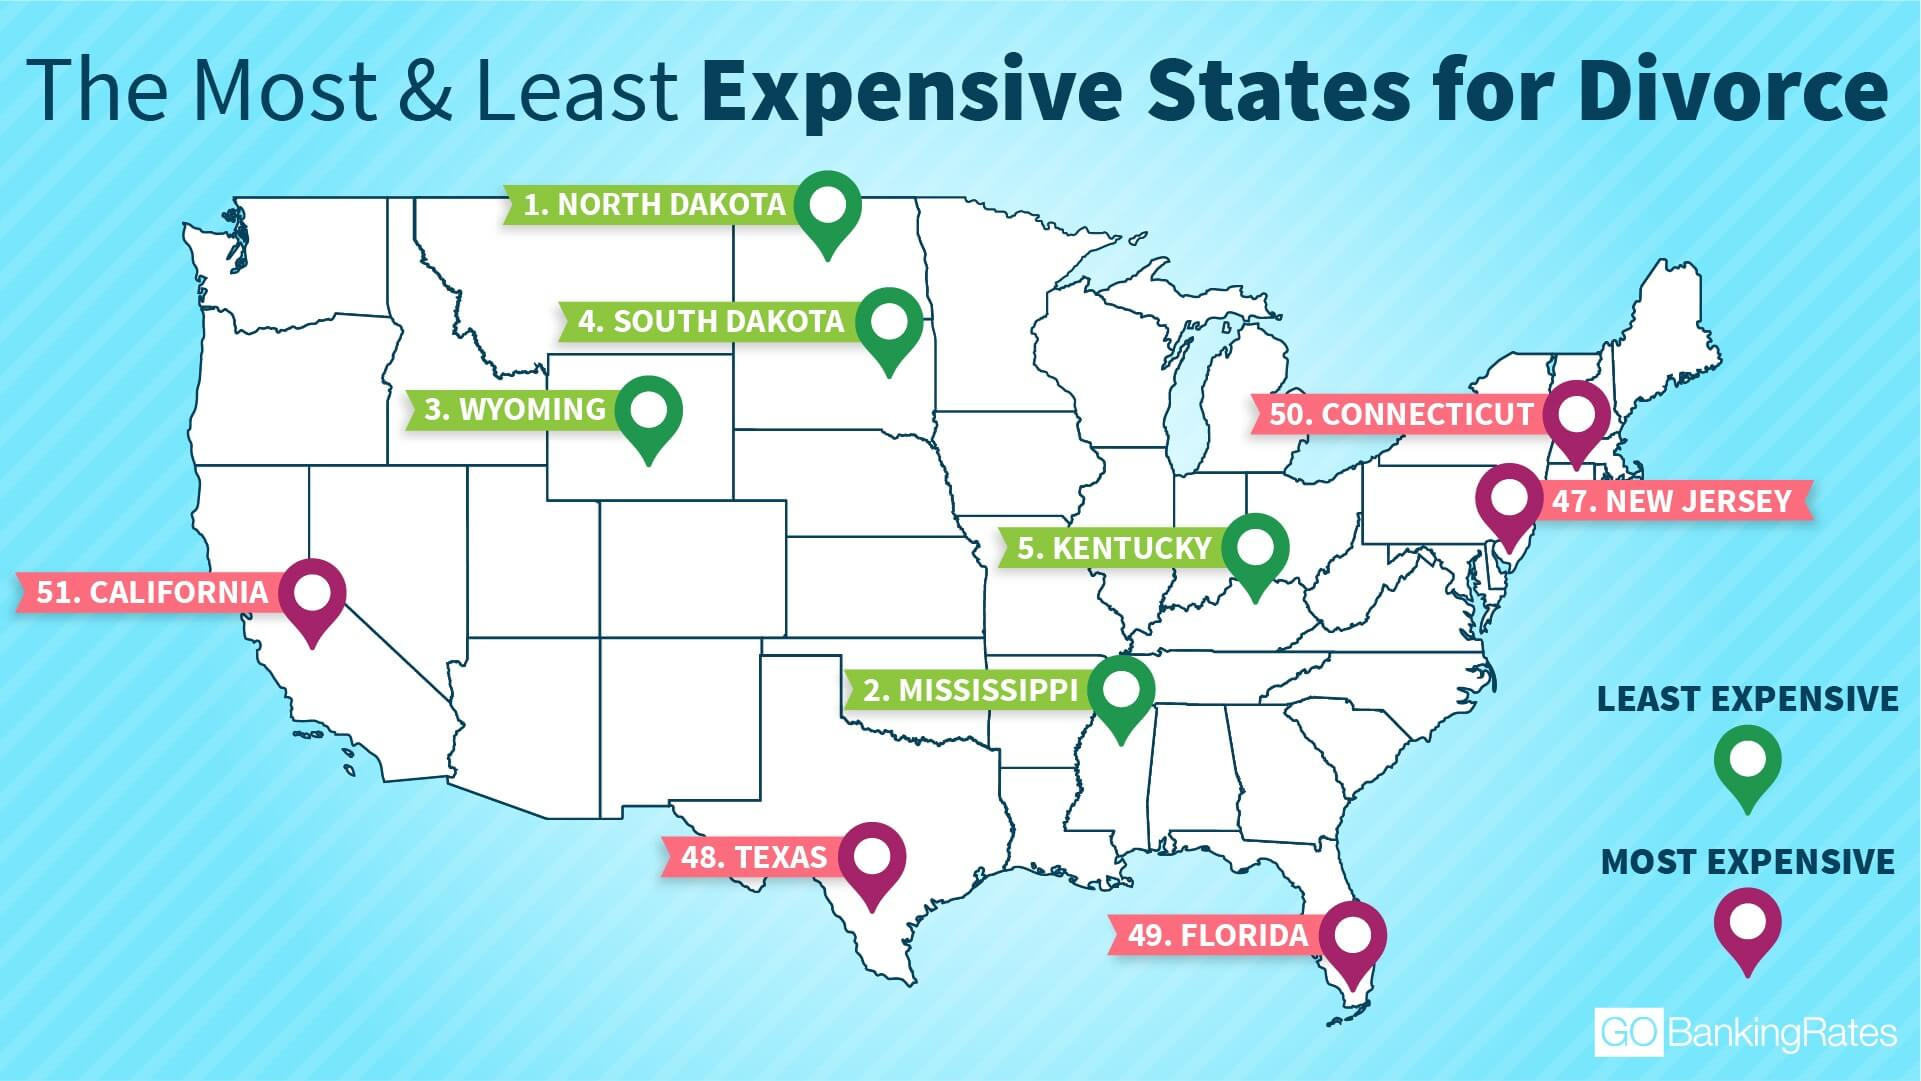 Getting a divorce is cheaper in these 5 states study finds map of the most and least expensive states for divorce solutioingenieria Choice Image